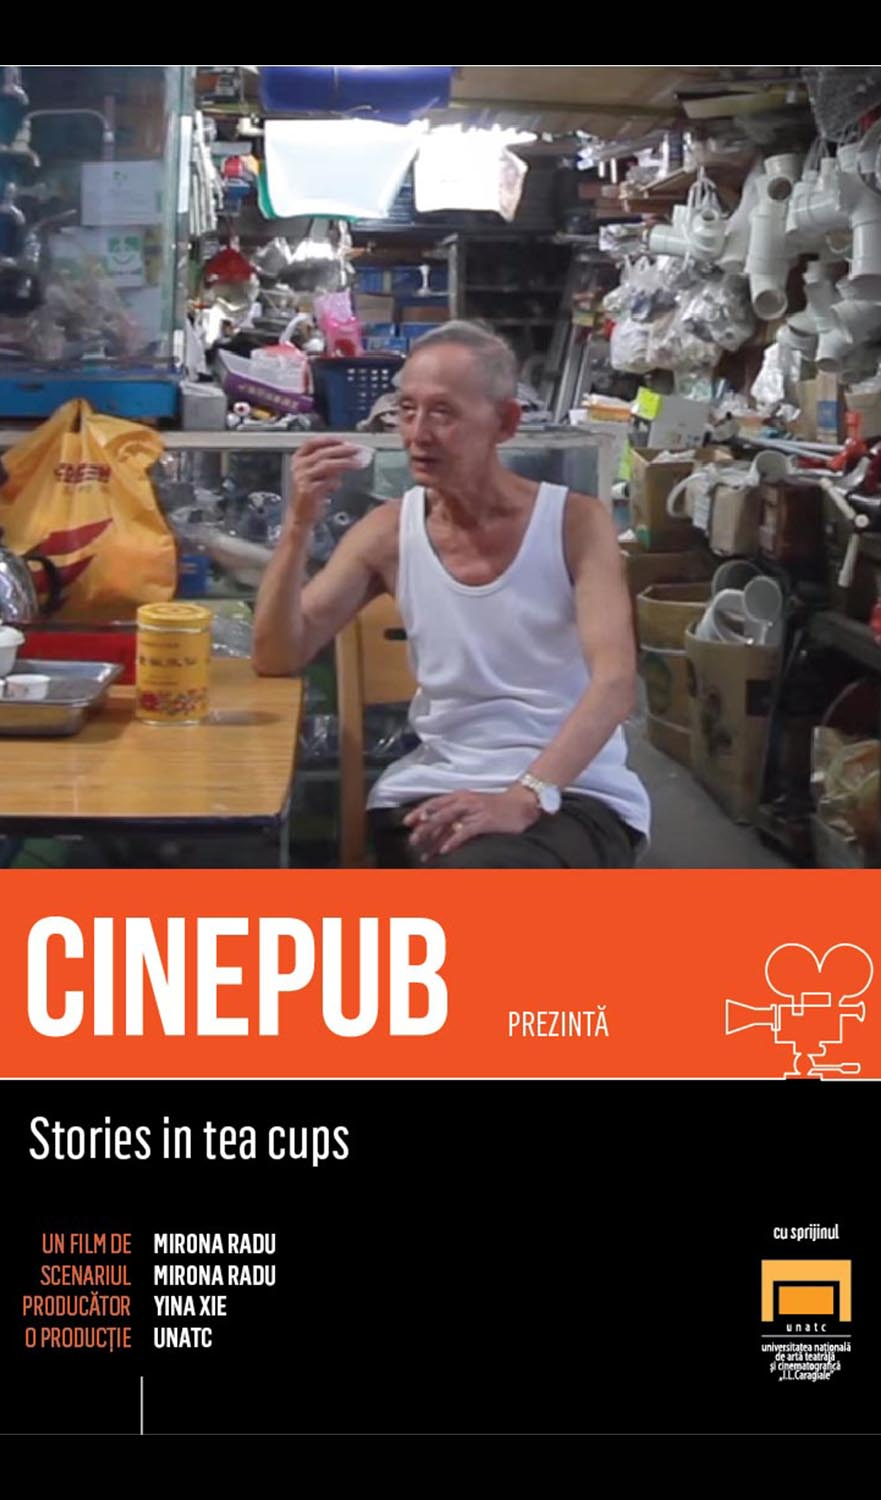 Stories in tea cups - Mirona Radu - CINEPUB - UNATC